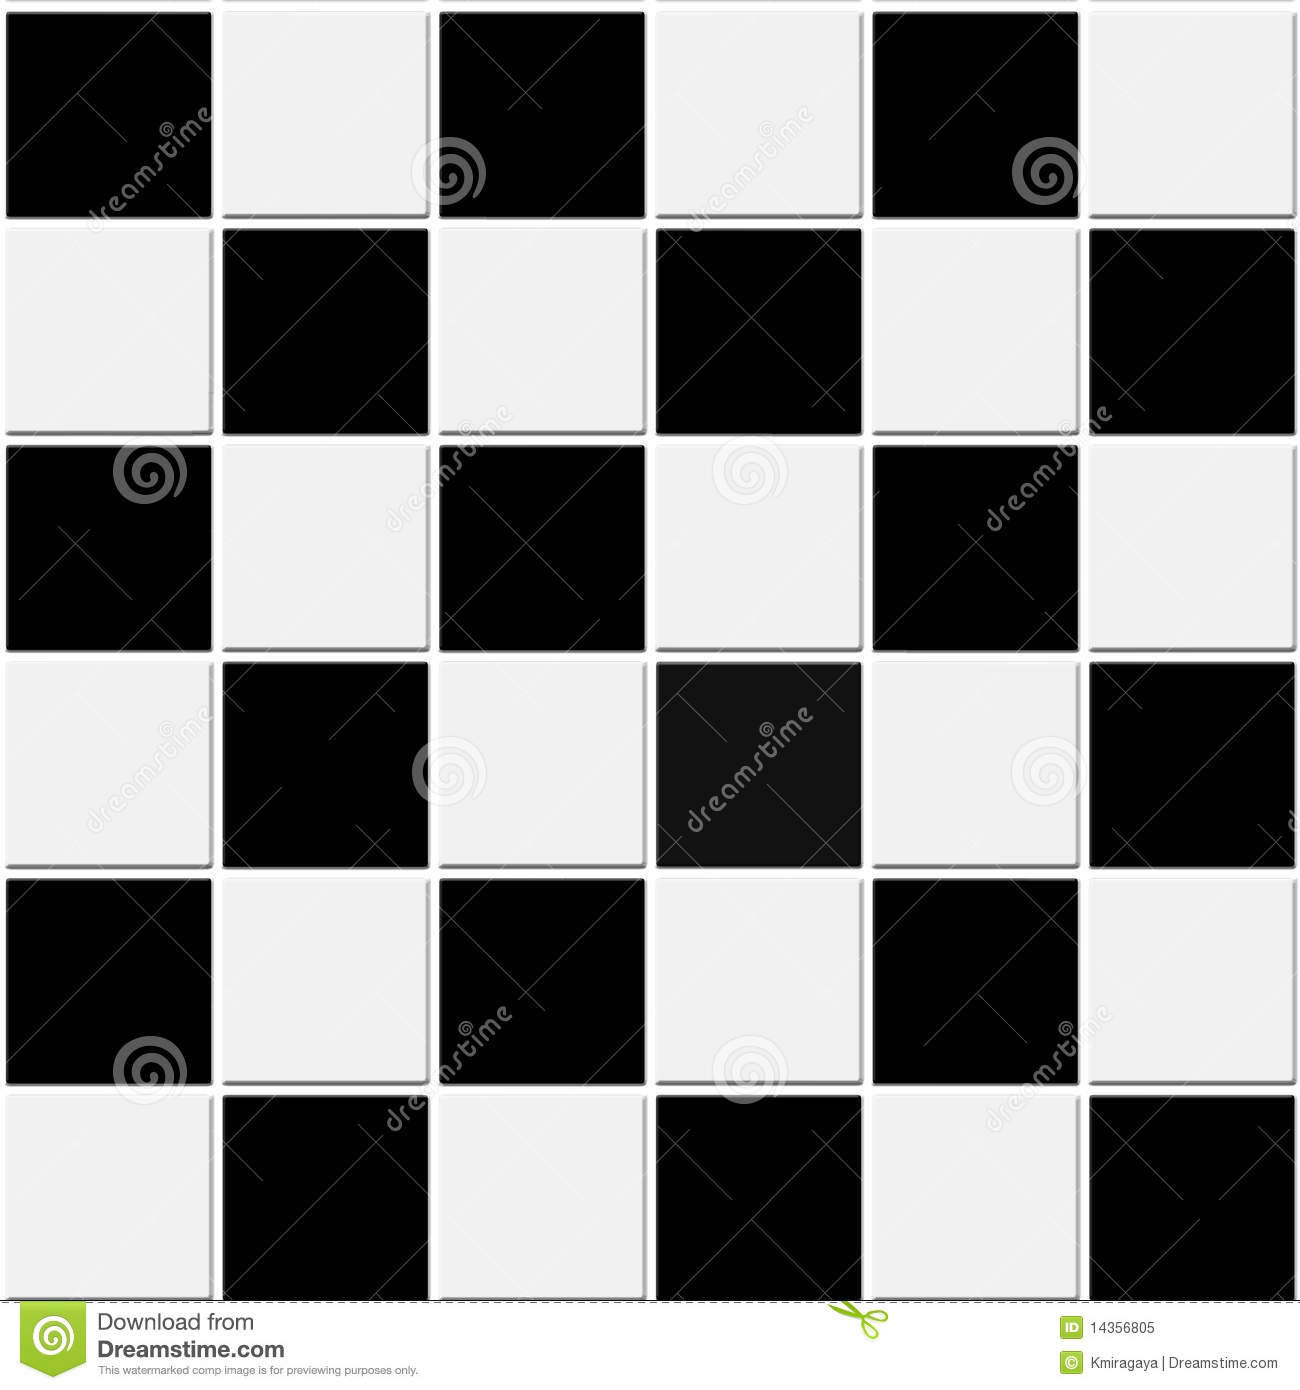 Seamless black and white tiles texture stock illustration for Tiles black and white